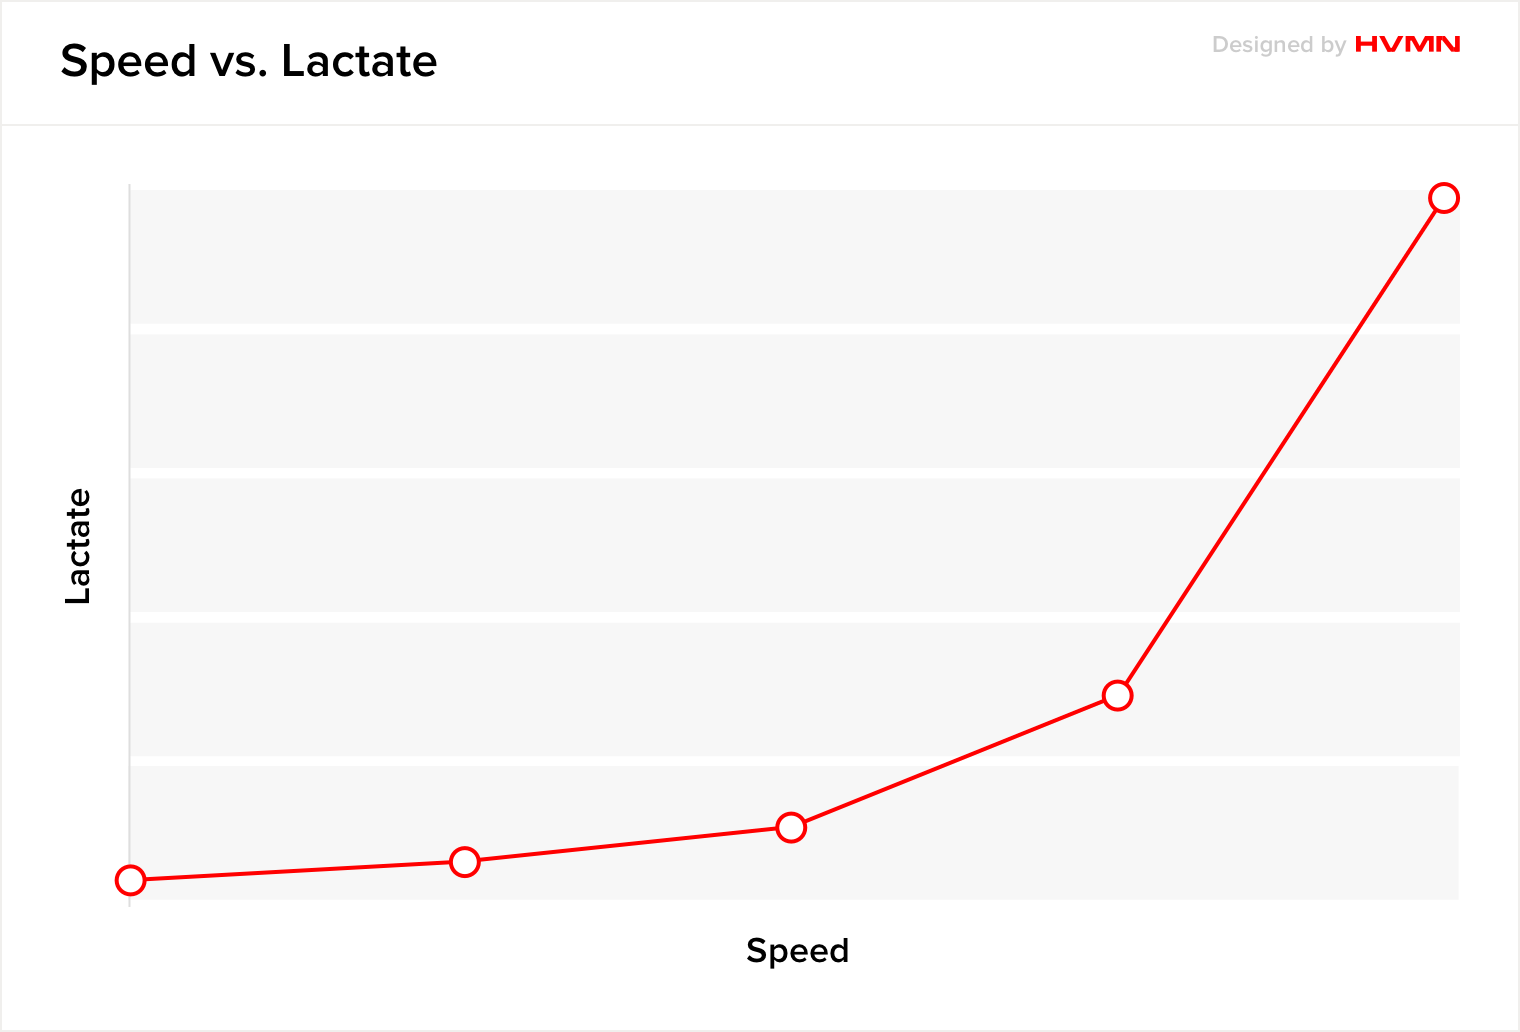 A chart illustrating that when speed increases, lactate increases but arrives at a point where it increases exponentially